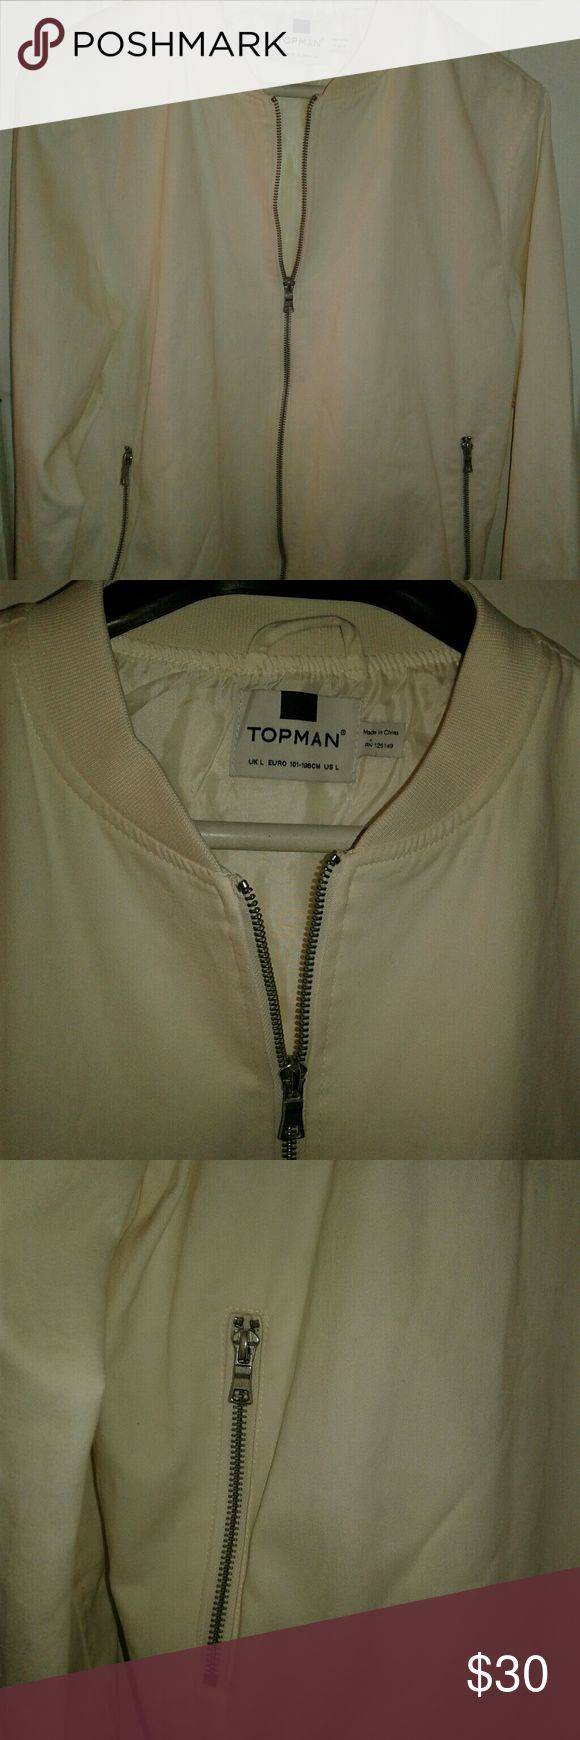 *NWOT* Topman bomber style Jacket Large light weight Topman jacket. Worn once and laundered. Silver zippers on front pockets and down the front. Fully lined. Great for spring and summer. Tag says large but it's a small large in my opinion. Topman Jackets & Coats Bomber & Varsity